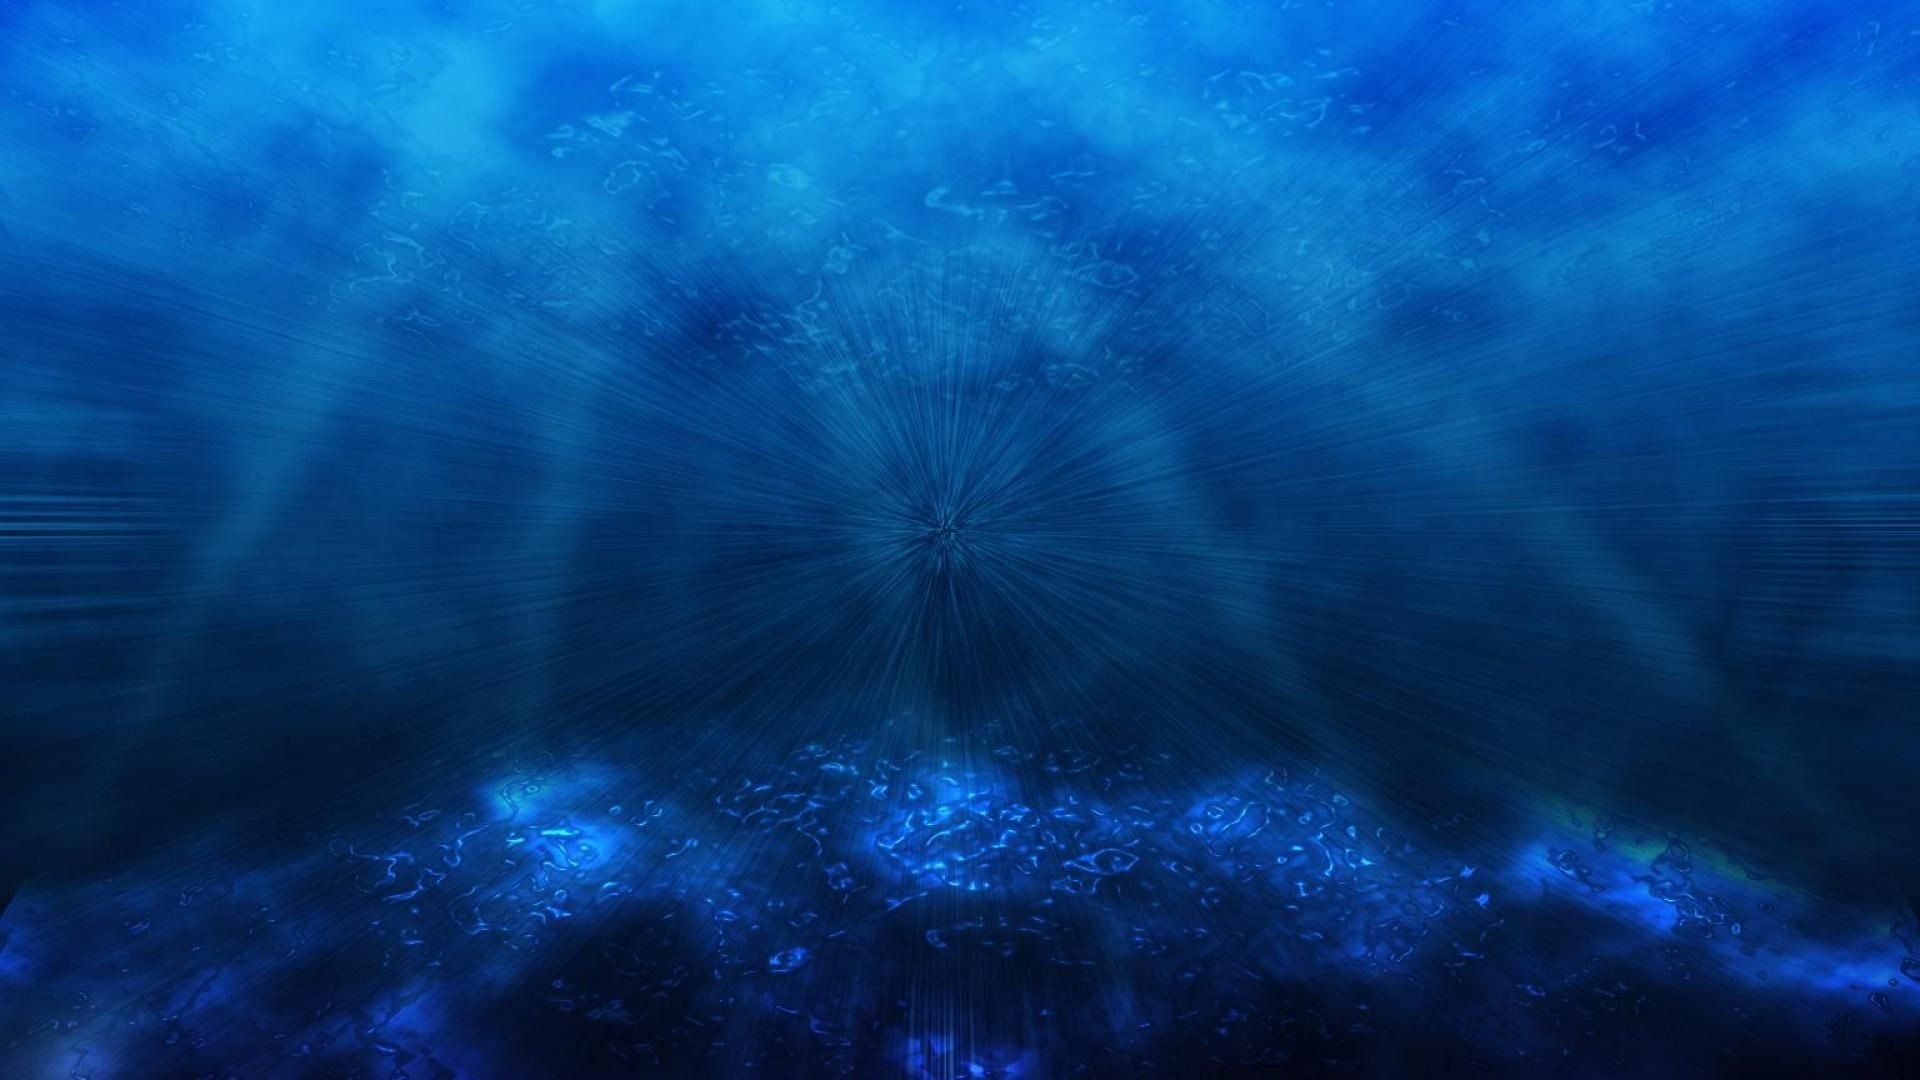 1920x1080 Deep Ocean Wallpaper Free Download.